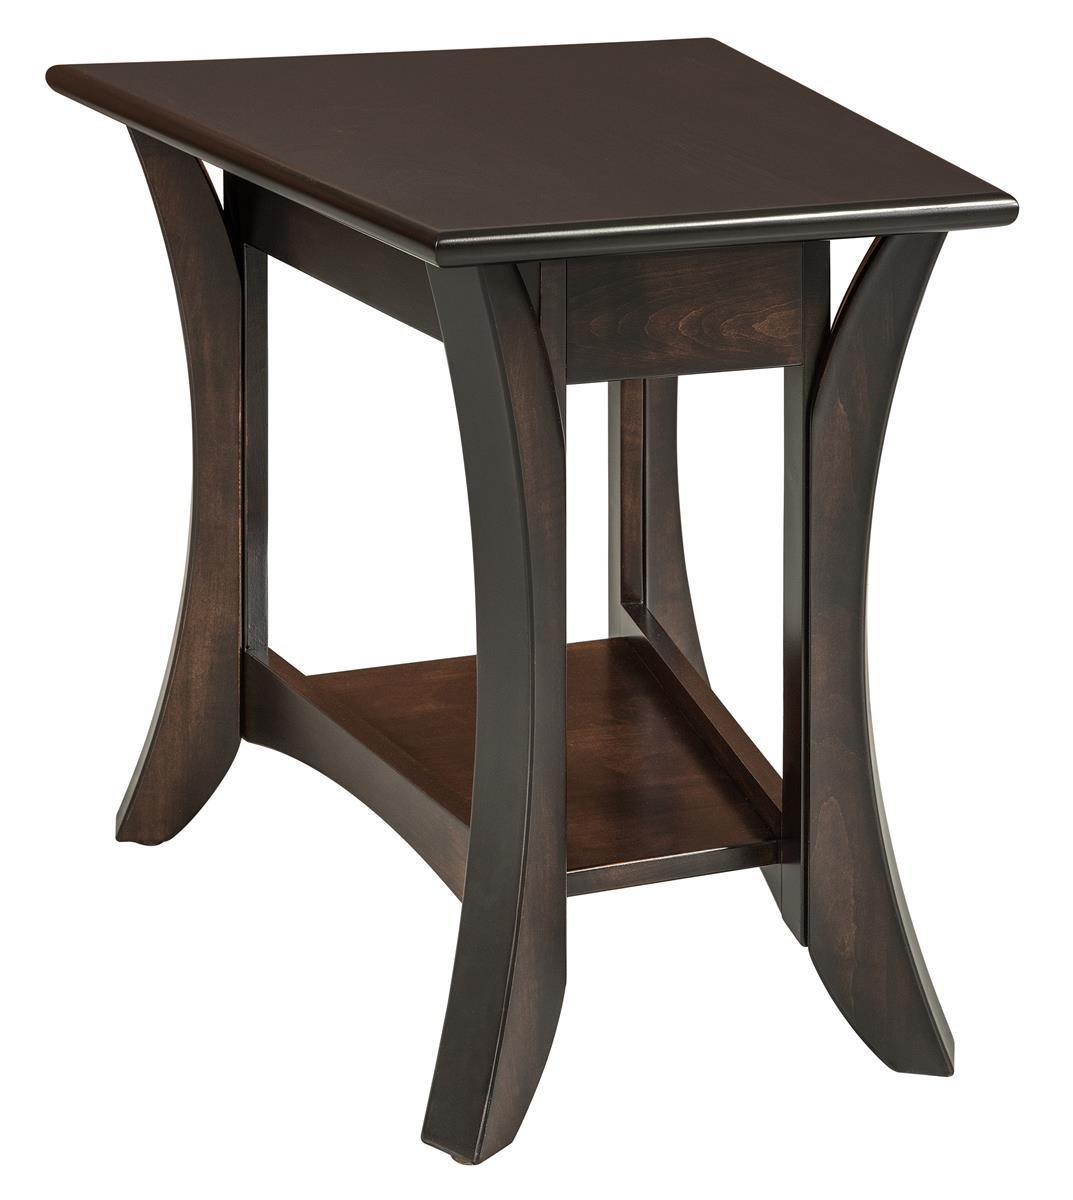 Catalina Wedge Shaped End Table From Dutchcrafters Amish